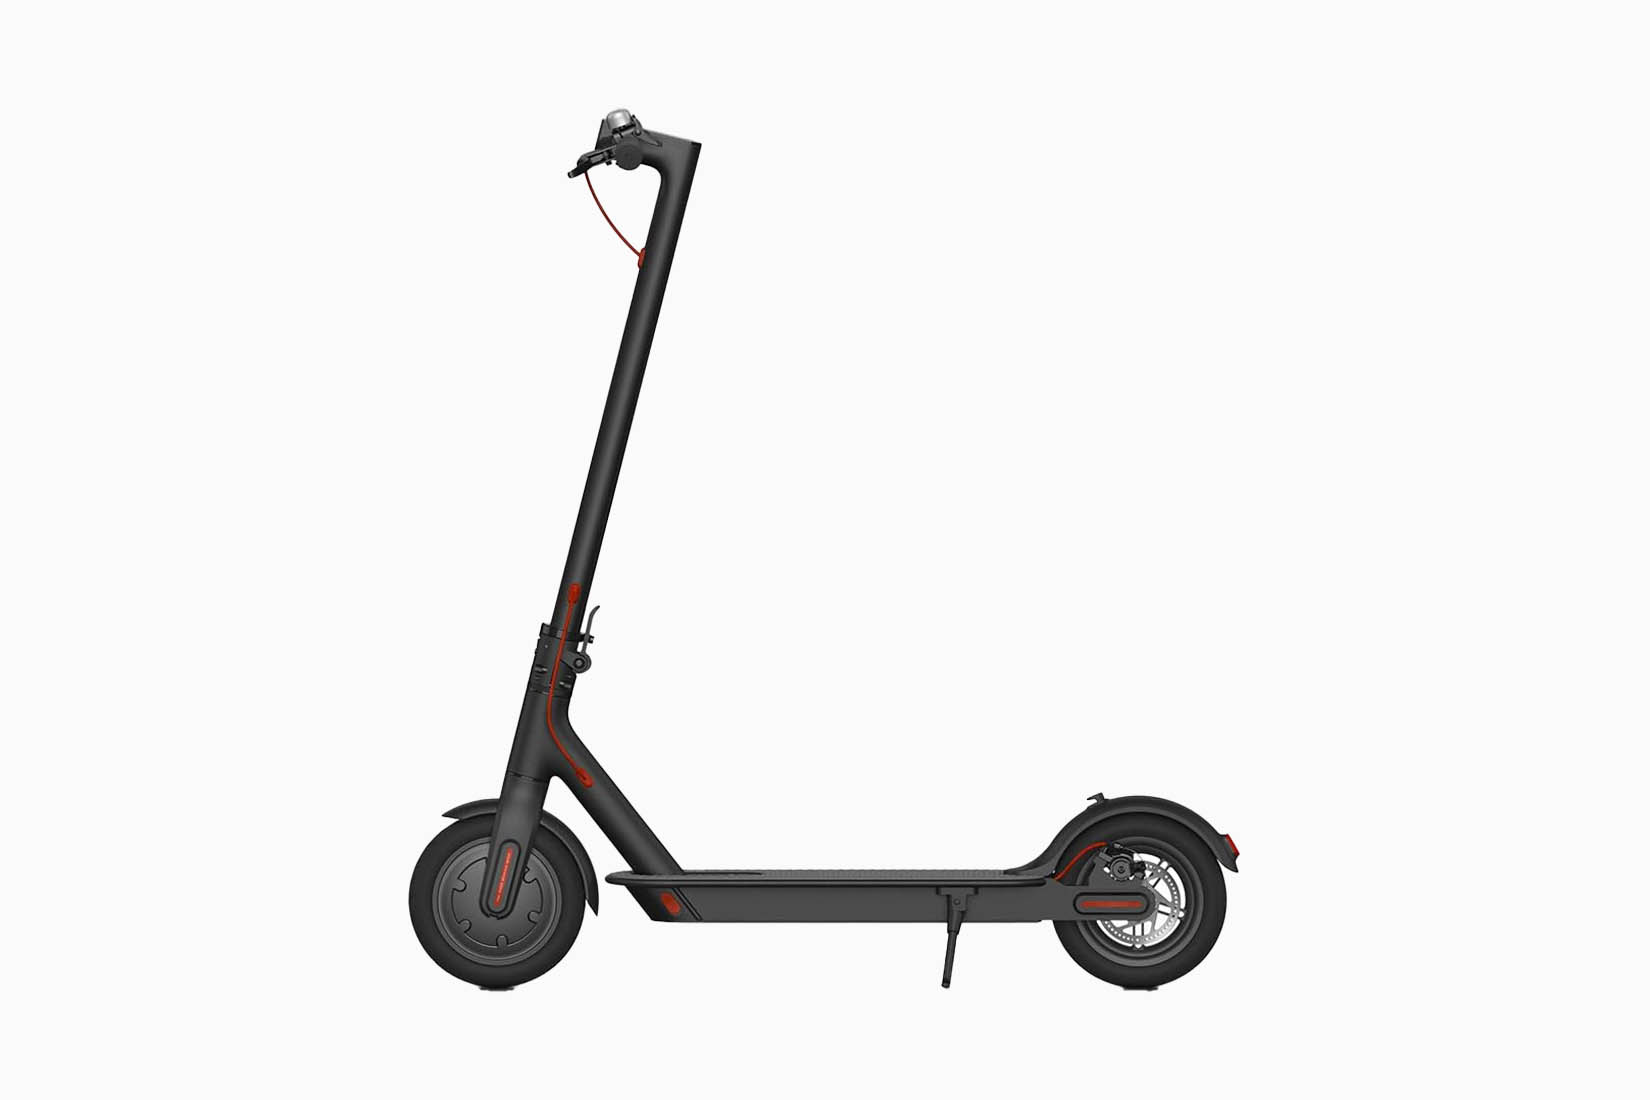 best electric scooter xiaomi mi review - Luxe Digital